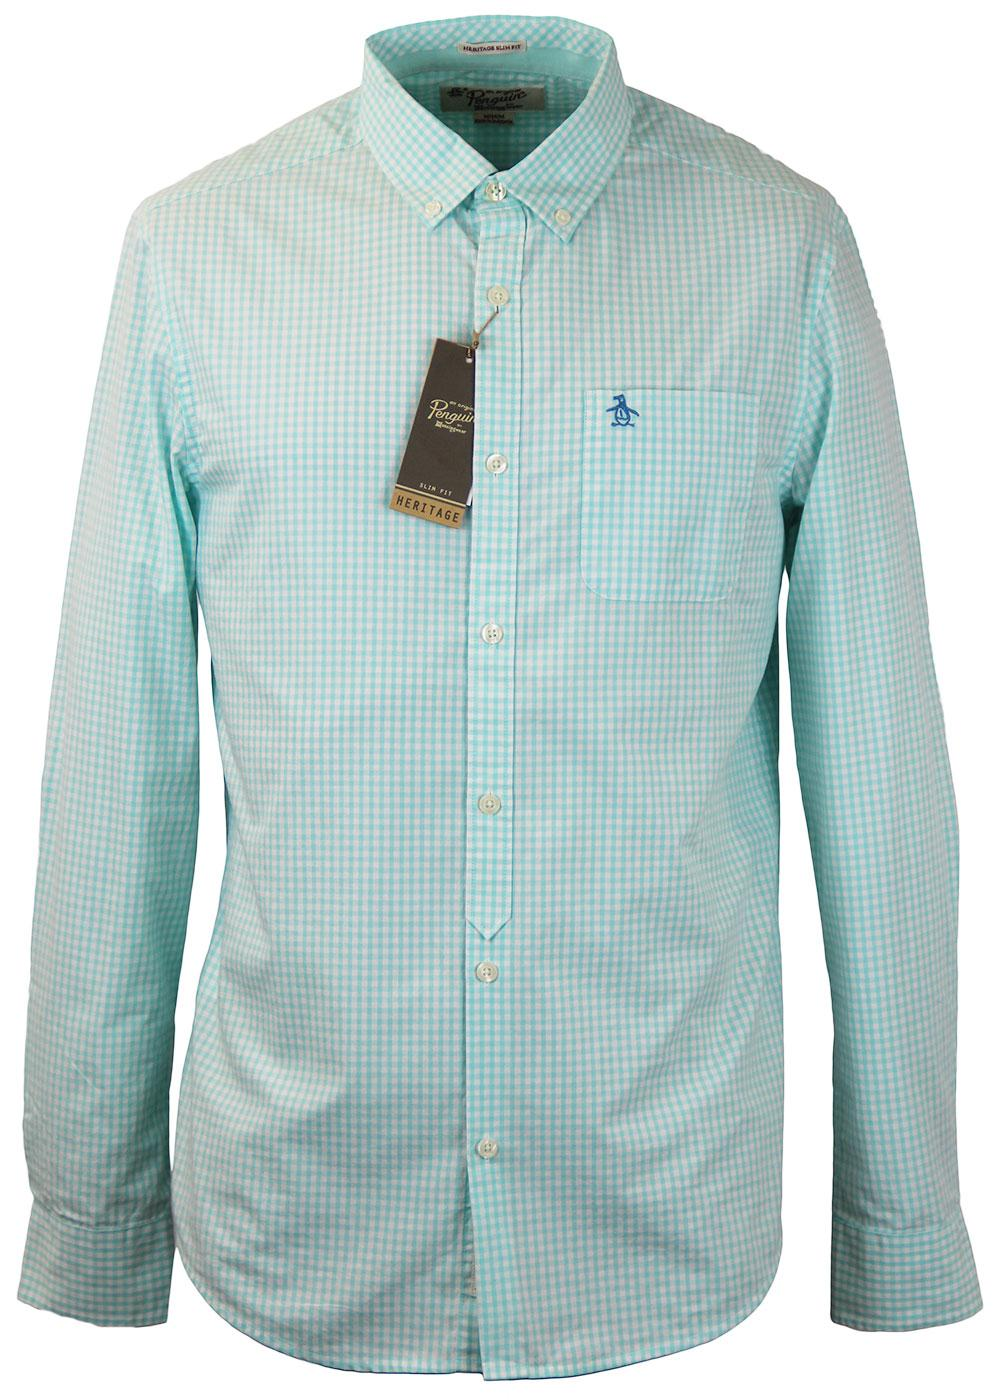 Belan ORIGINAL PENGUIN Retro Mod Gingham Shirt AB